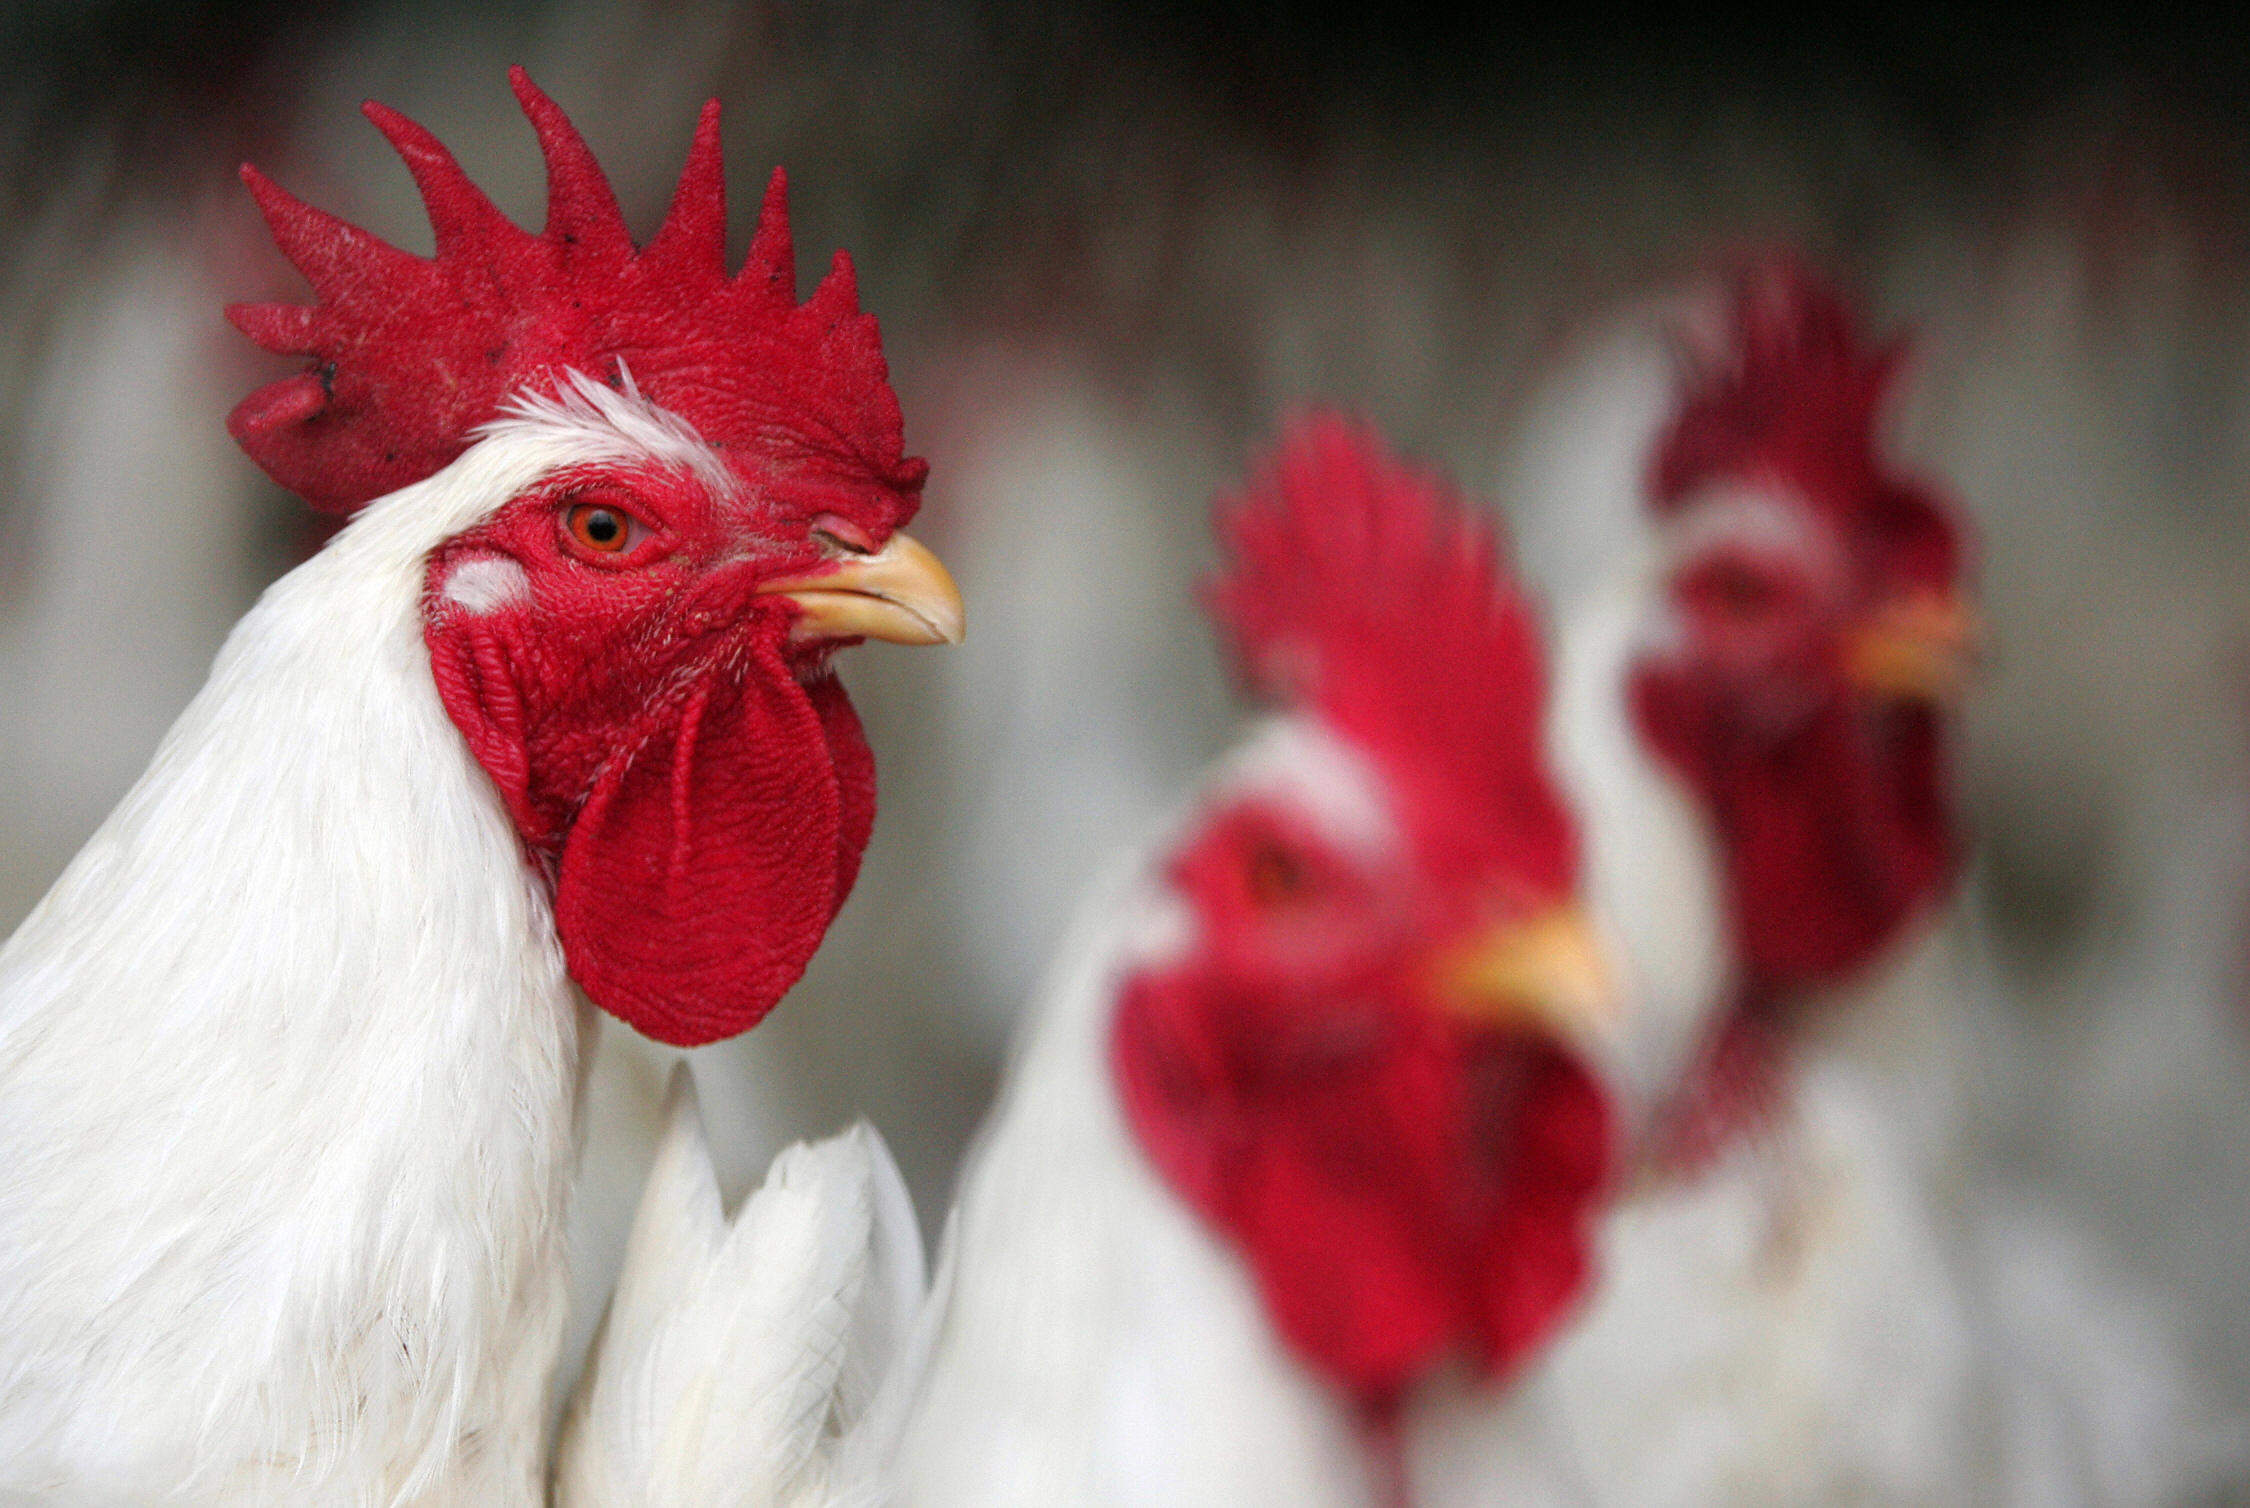 A Fox among the chickens: why chlorinated poultry is about more than what's on your plate